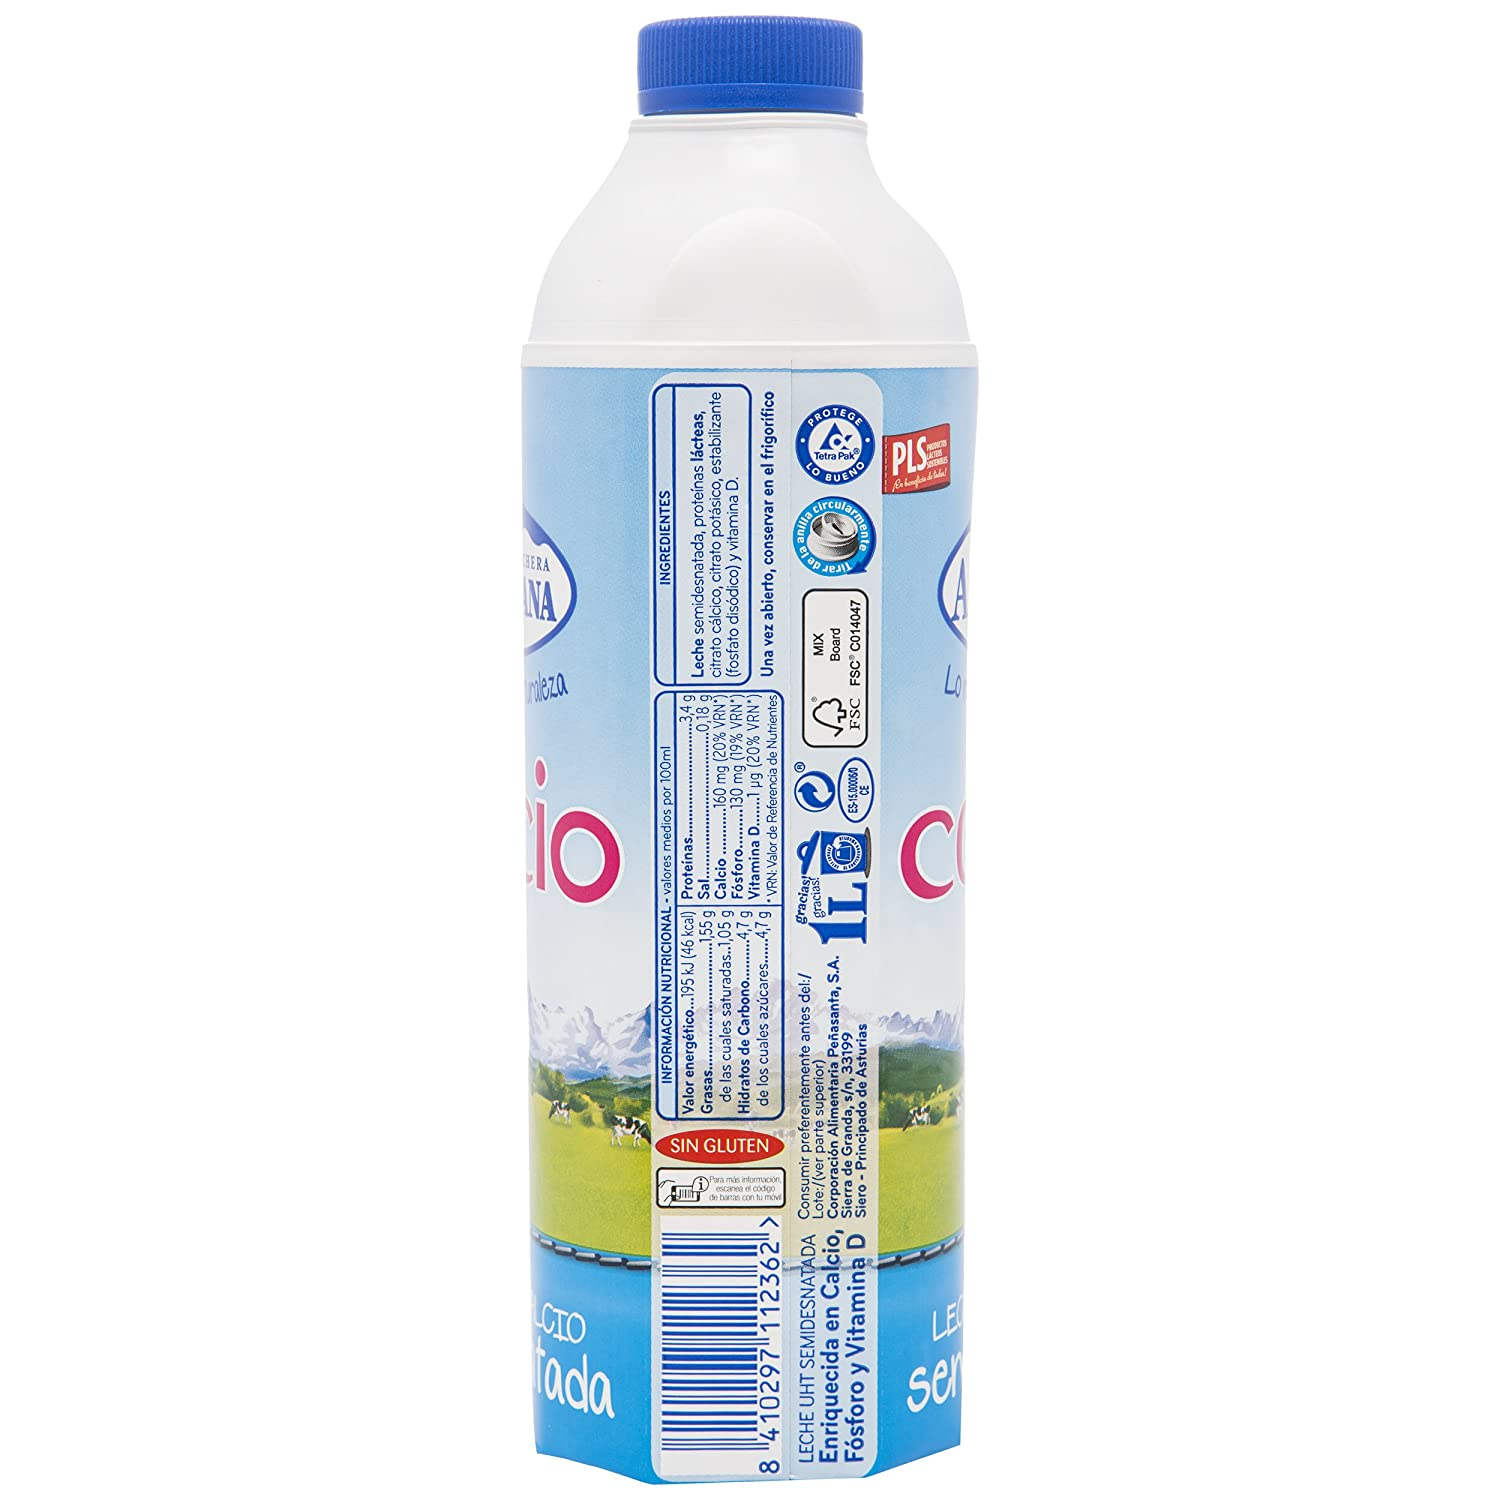 Central Lechera Asturiana Leche Calcio Semidesnatada - Paquete de 6 x 1000 ml - Total: 6000 ml: Amazon.es: Amazon Pantry